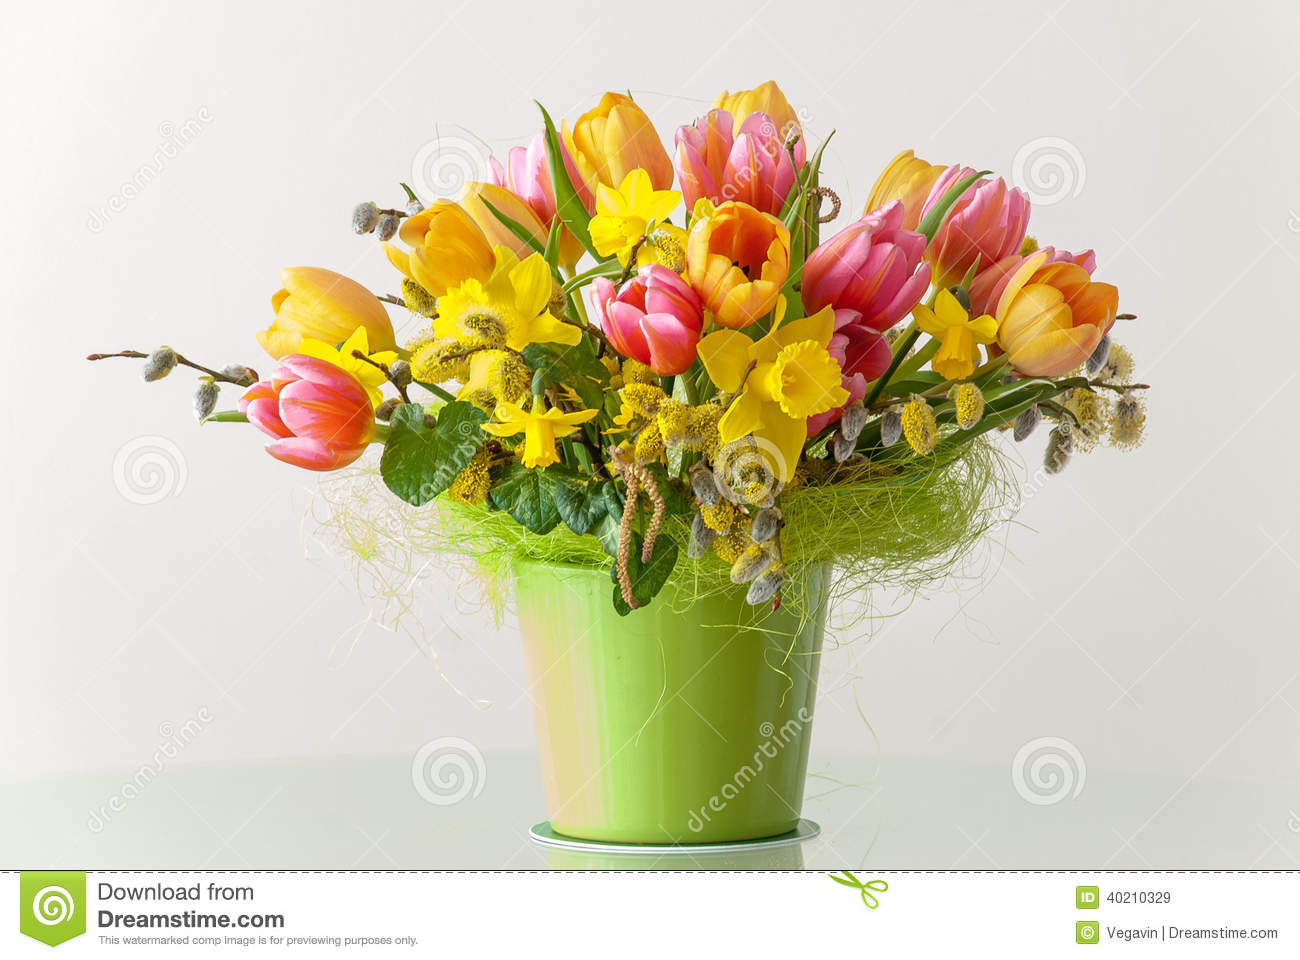 Bouquet of spring flowers stock image image of centerpiece 40210329 bouquet of spring flowers izmirmasajfo